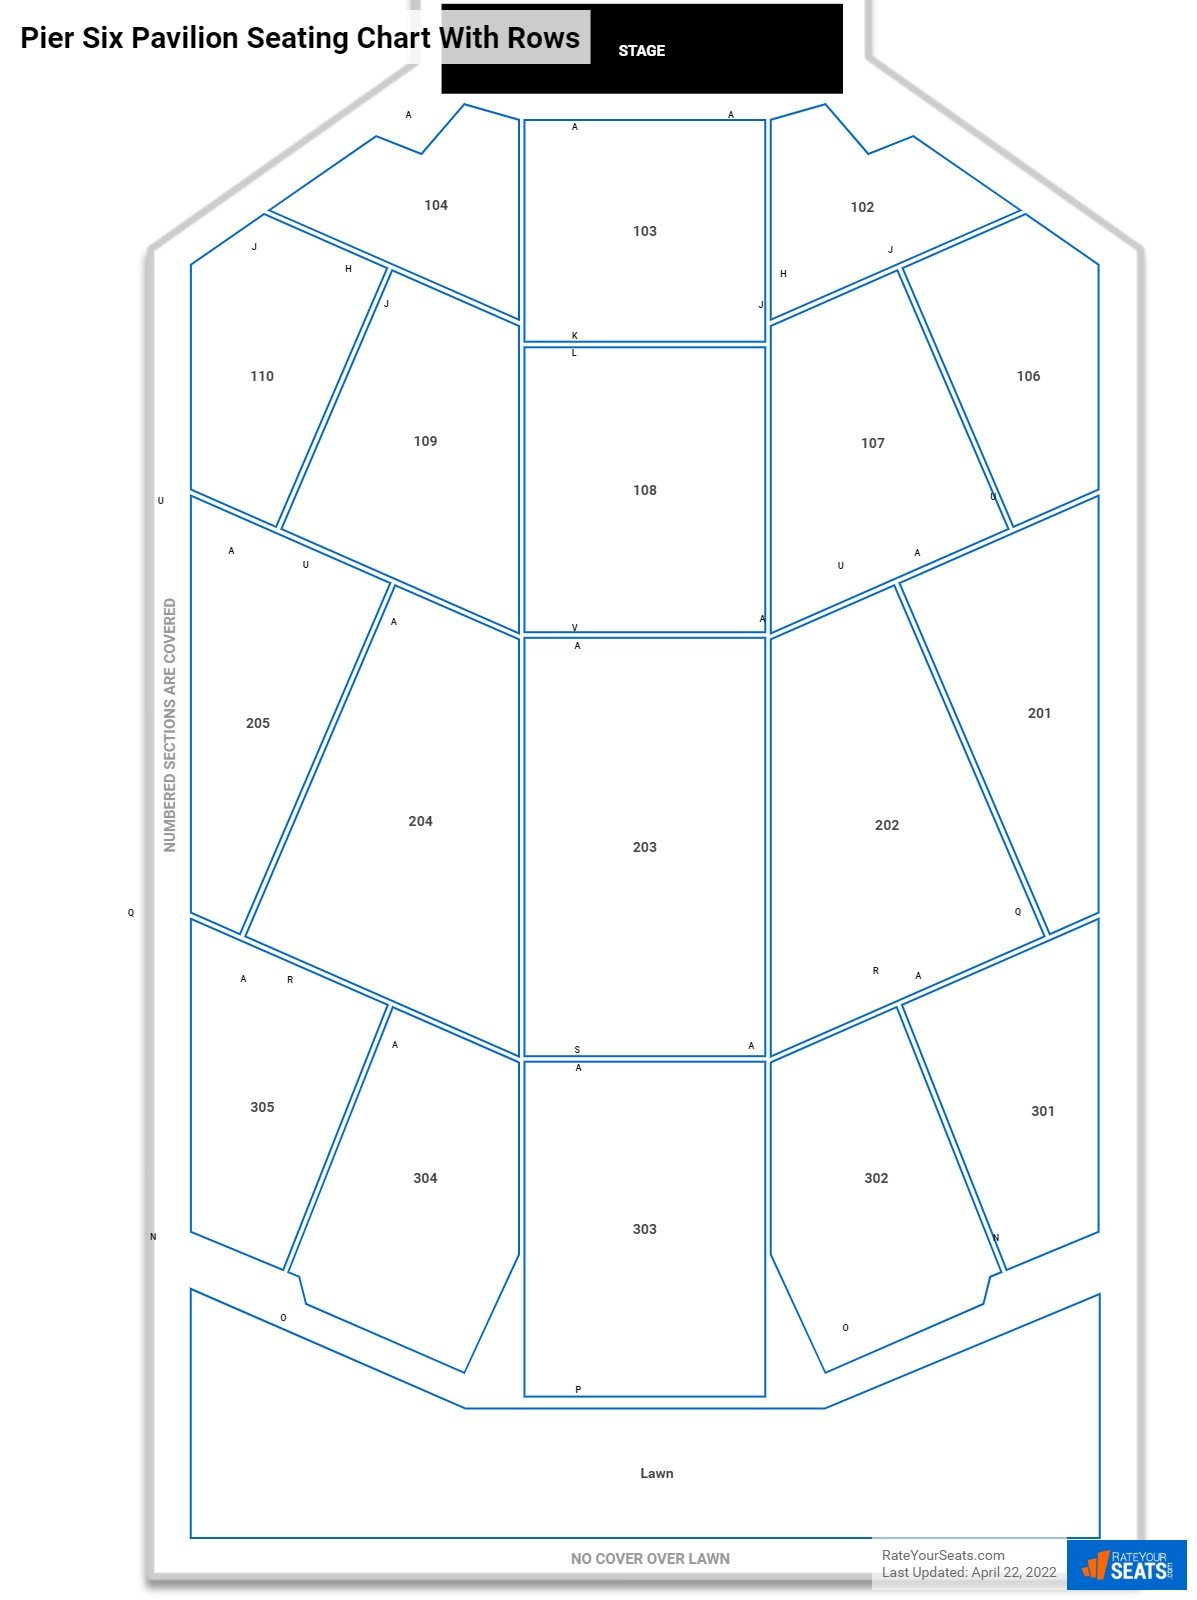 MECU Pavilion seating chart with rows